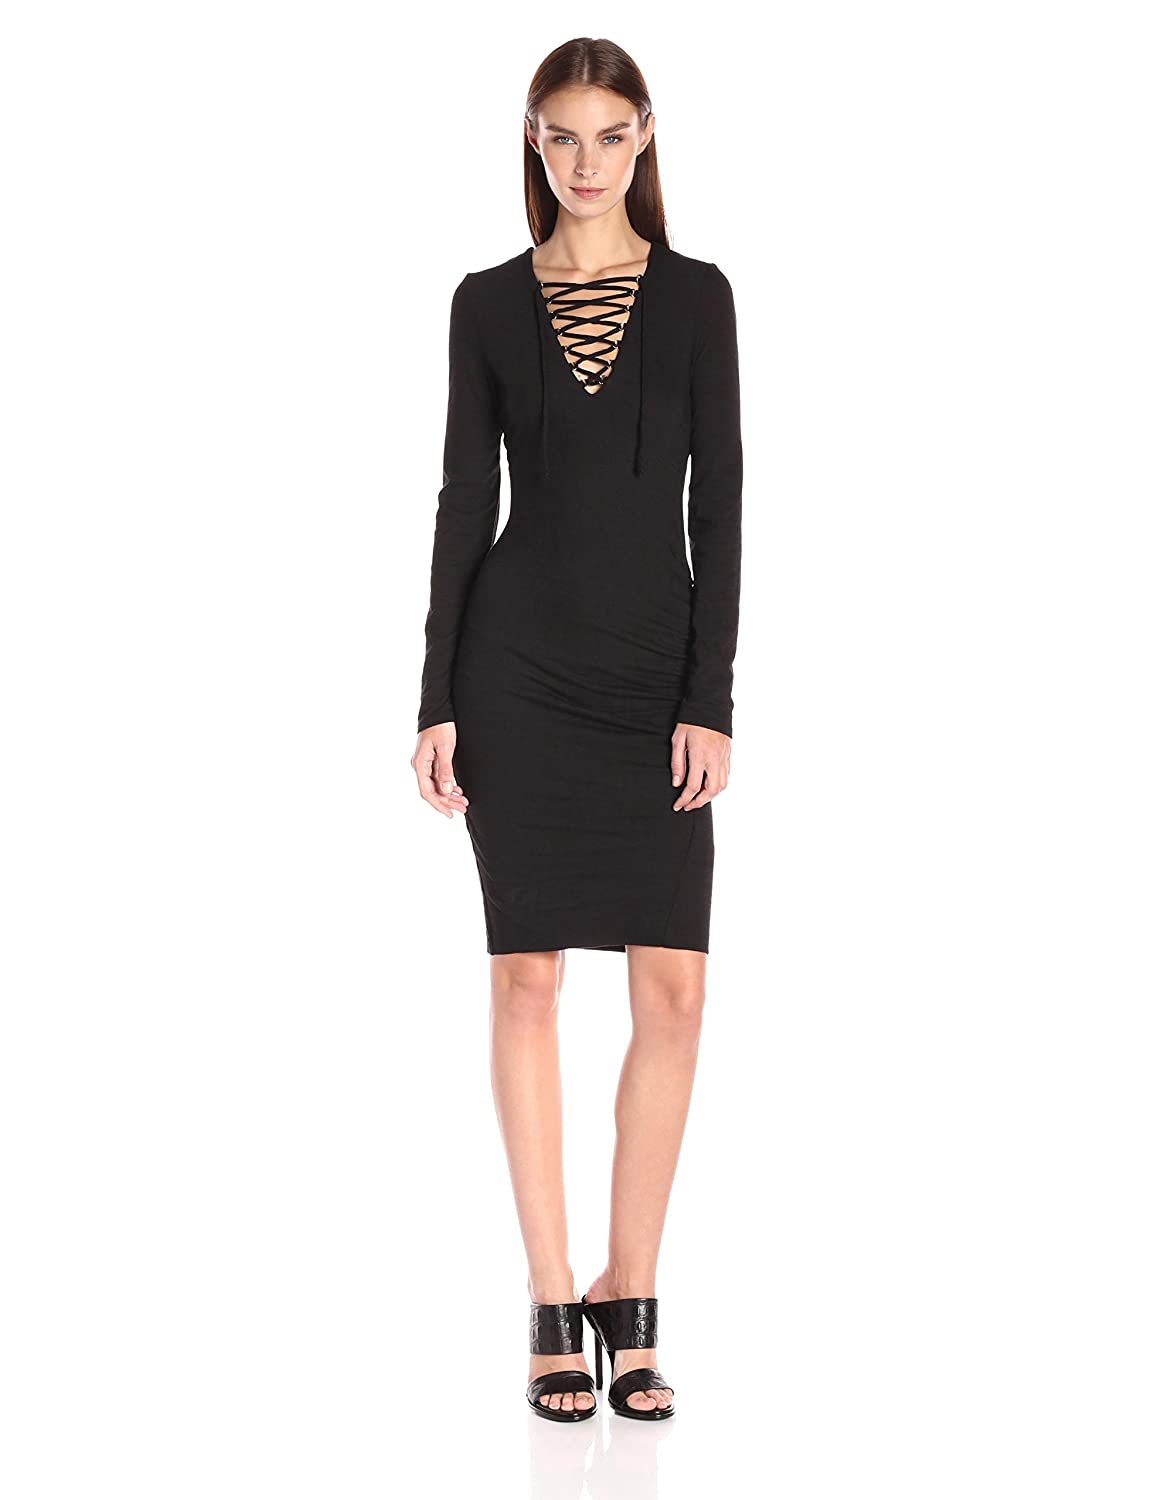 Pam & Gela Women's Lace up Ruched Dress